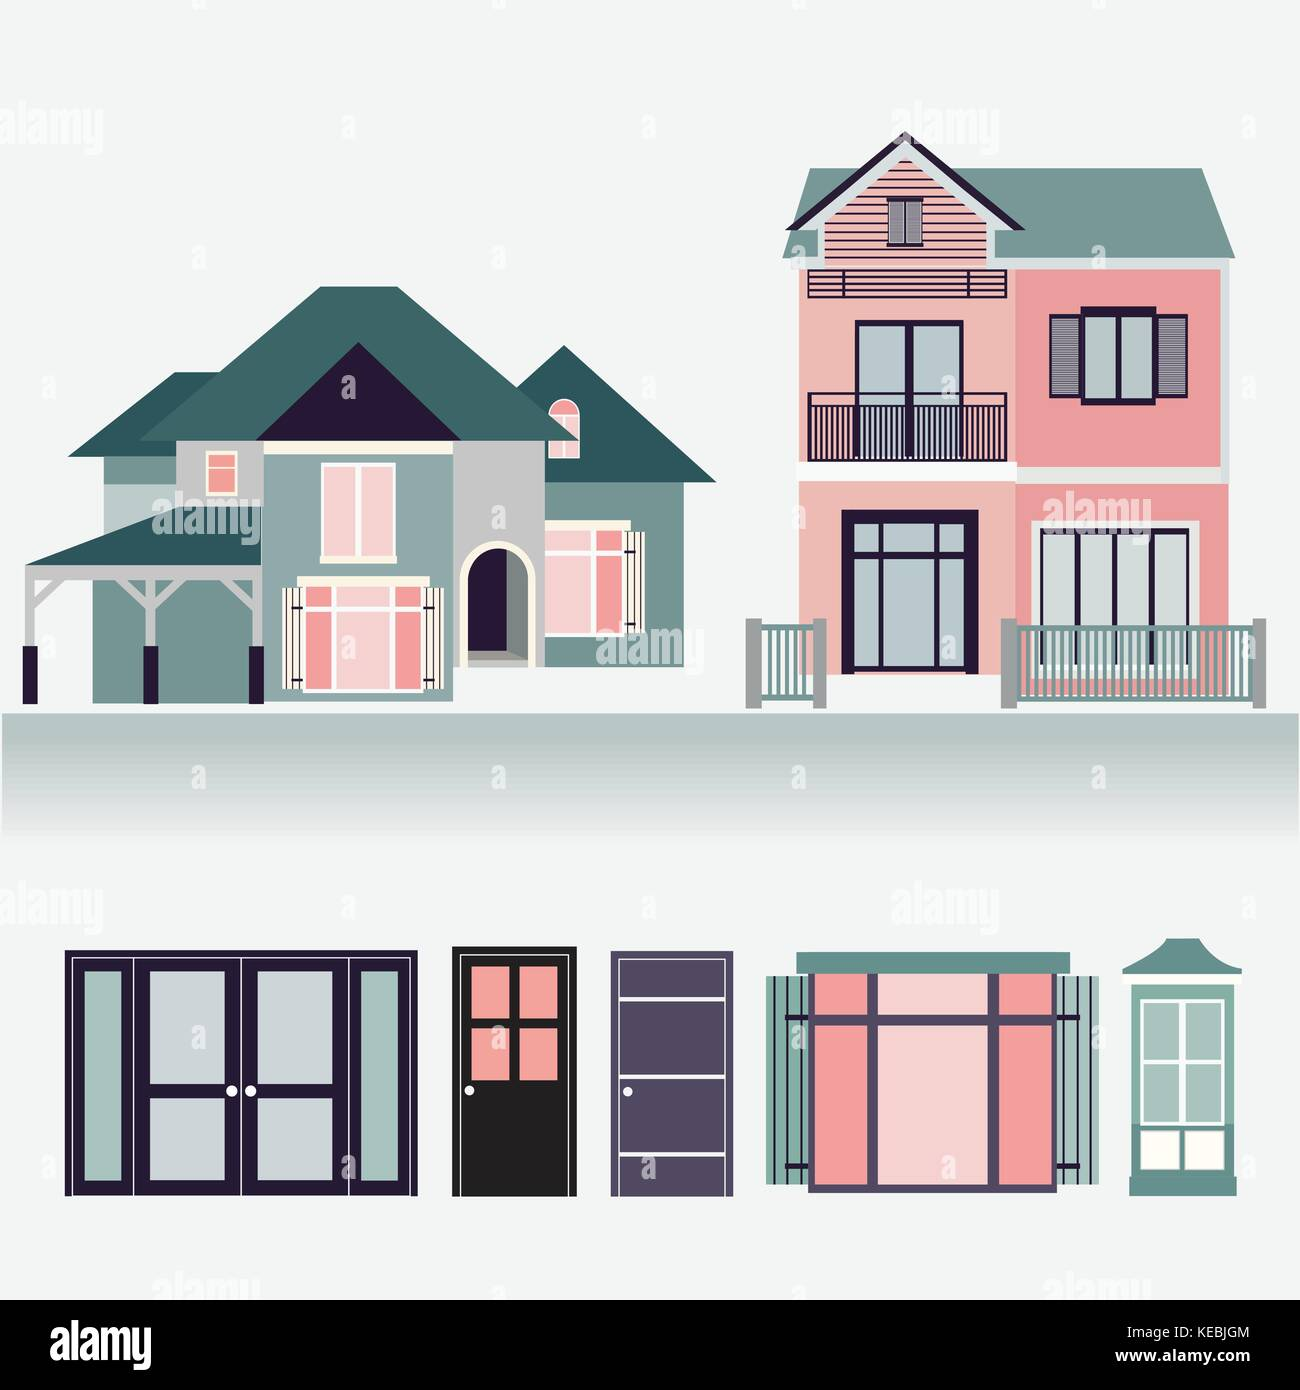 Neighborhood Houses Vector Icon Design Stockfotos & Neighborhood ...